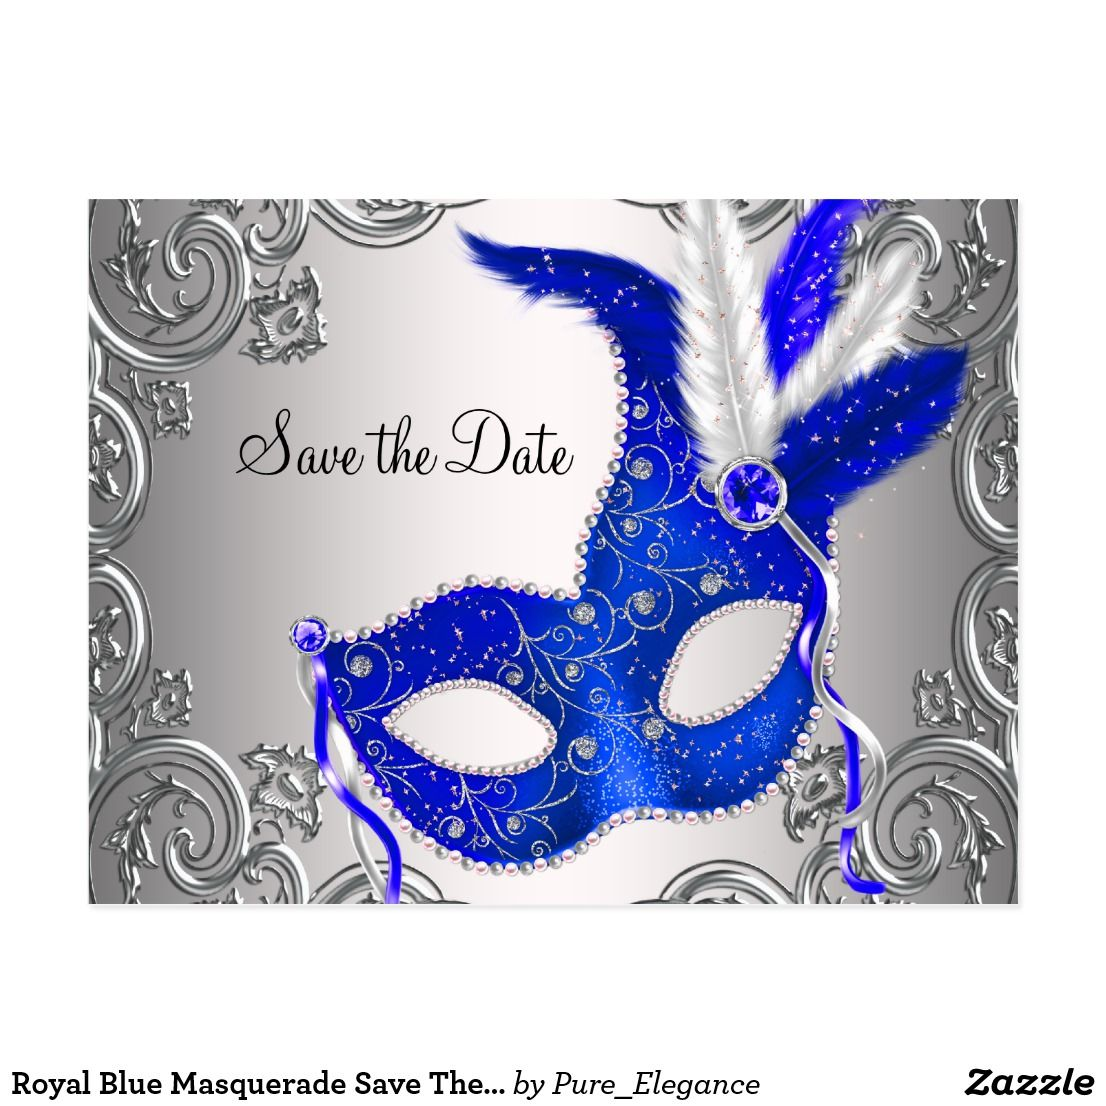 Royal Blue Masquerade Save The Date Announcement Postcard